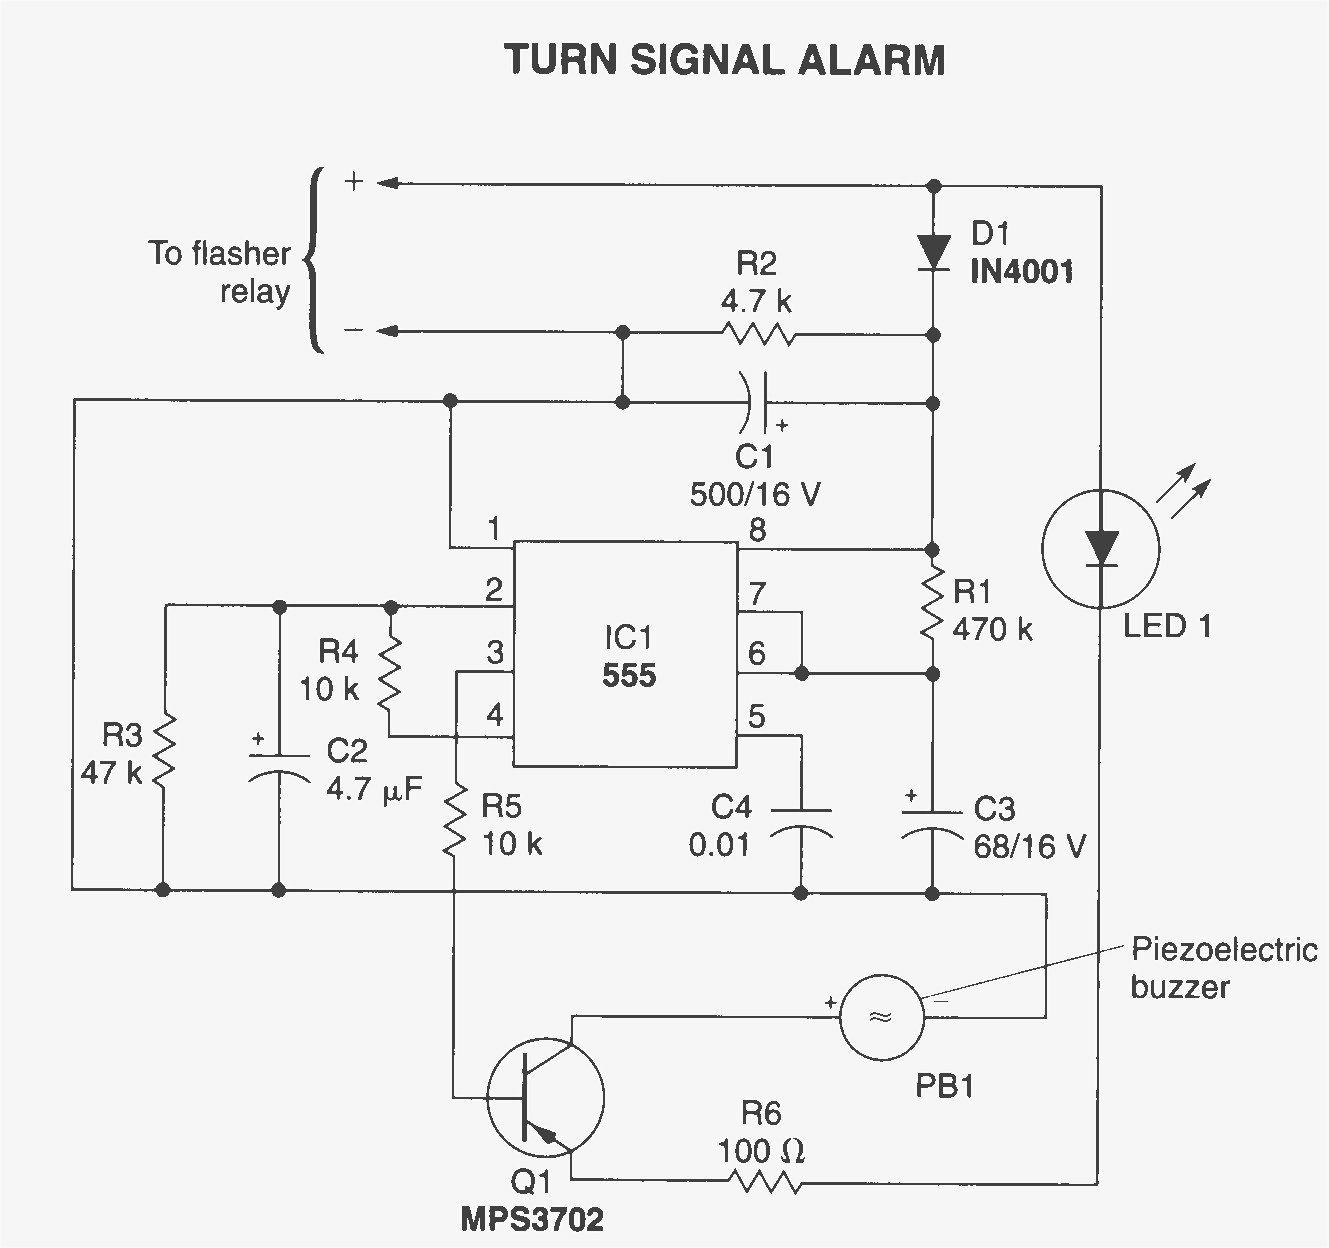 rj31x diagram alarm trusted wiring diagrams u2022 rh urbanpractice me RJ31X Connection Diagram Security System RJ31X